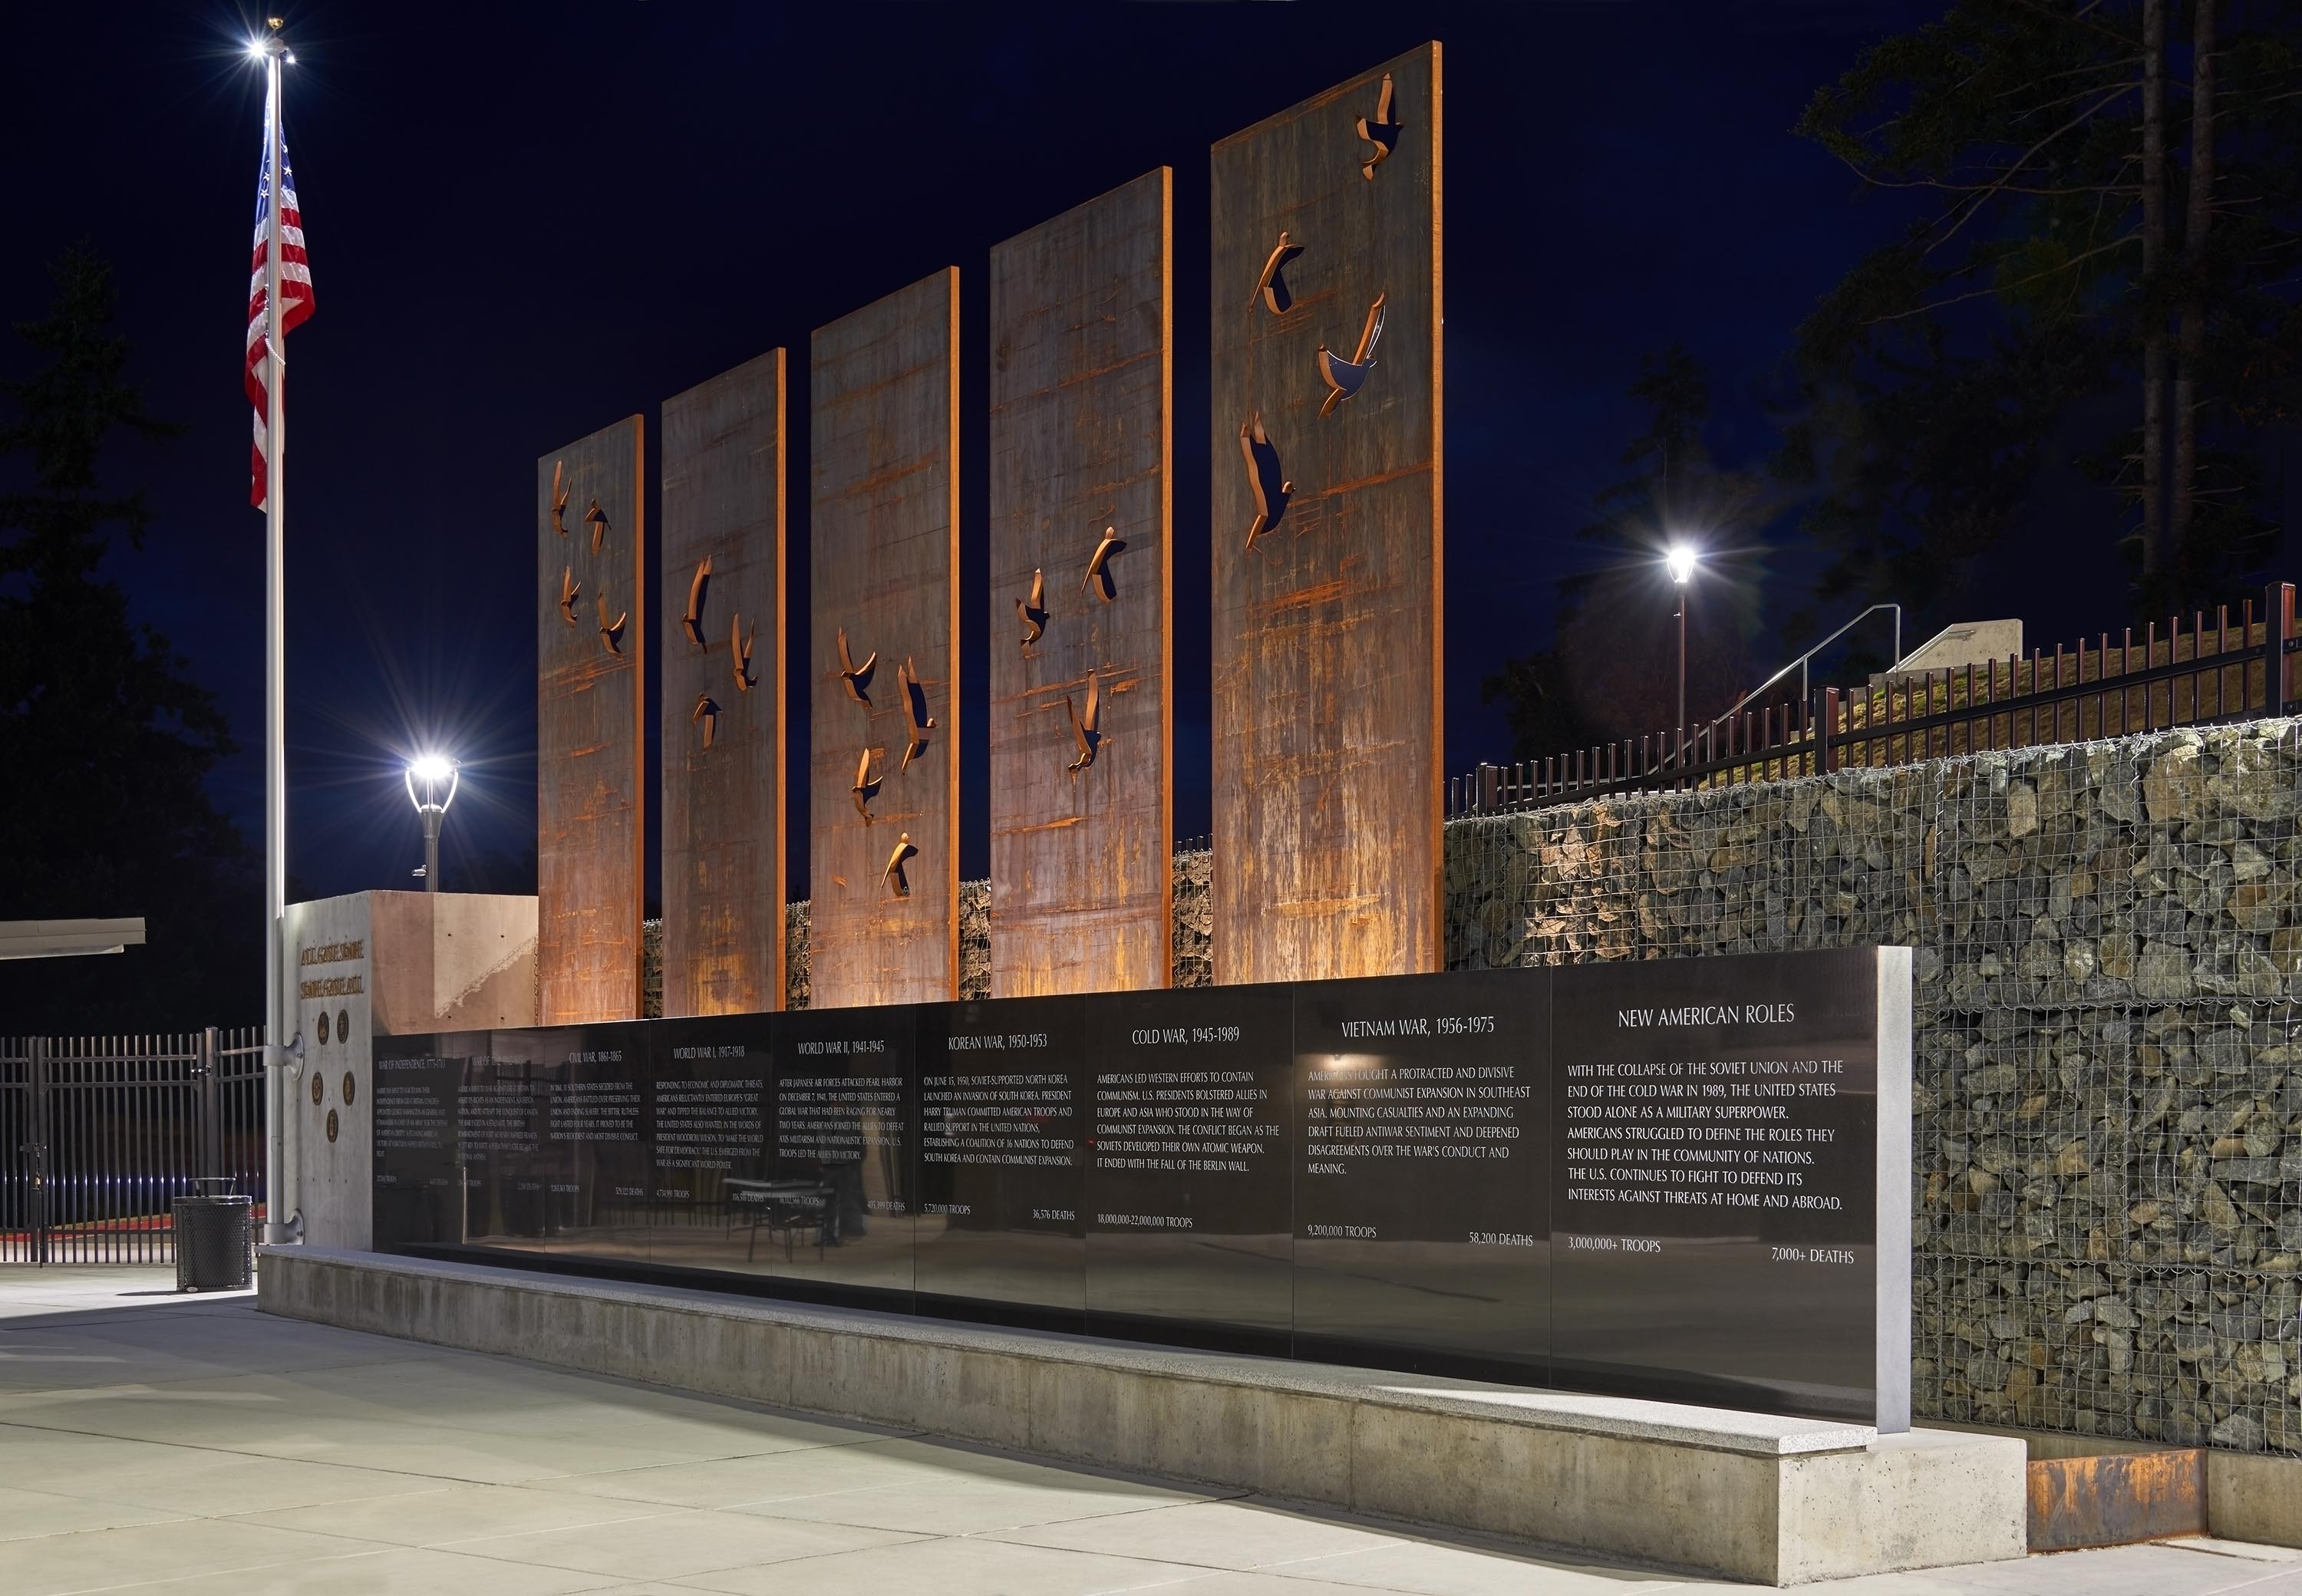 A memorial structure with the history of every U.S. war.